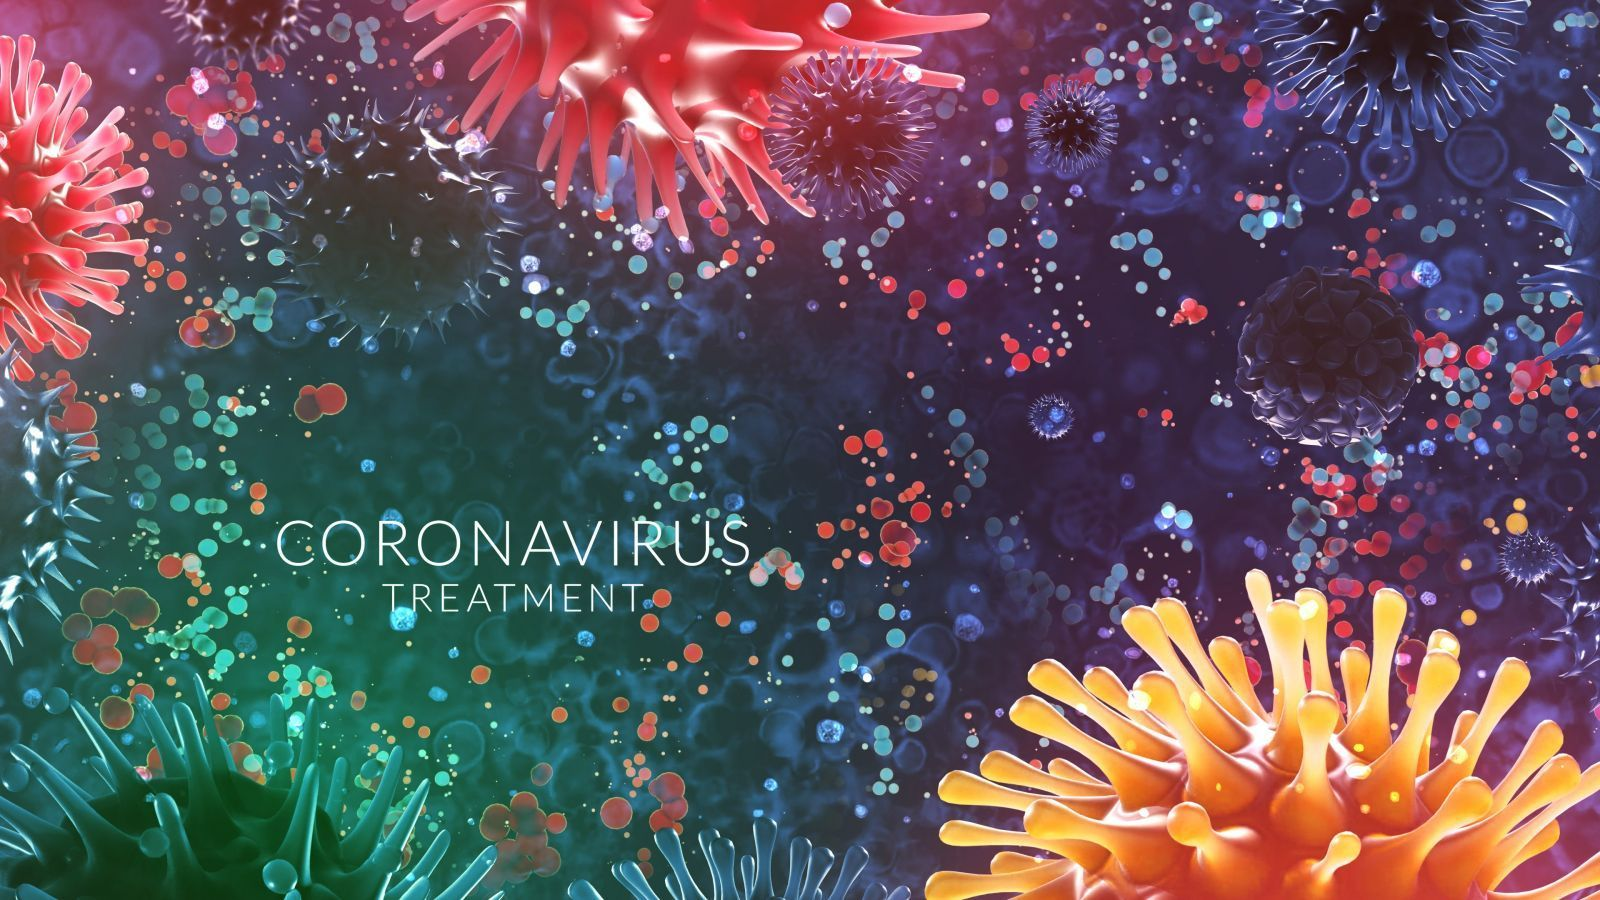 Coronavirus Treatment Opener